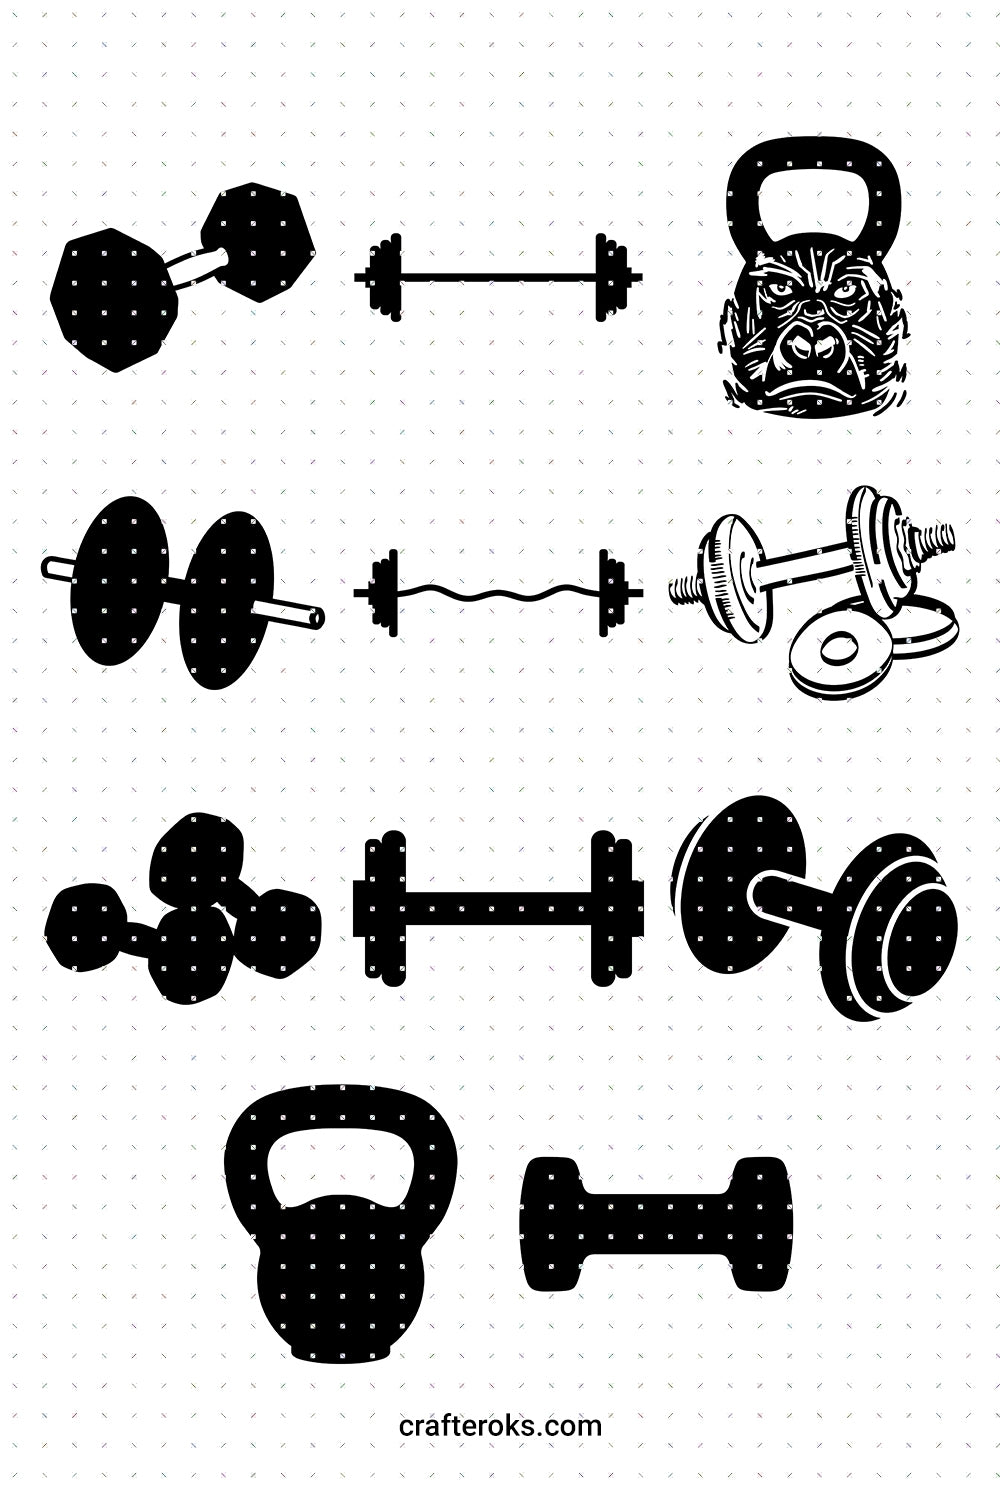 lifting weights SVG, gym equipment PNG, kettlebell DXF, dumbbell clipart, barbell EPS, vector cut file instant download